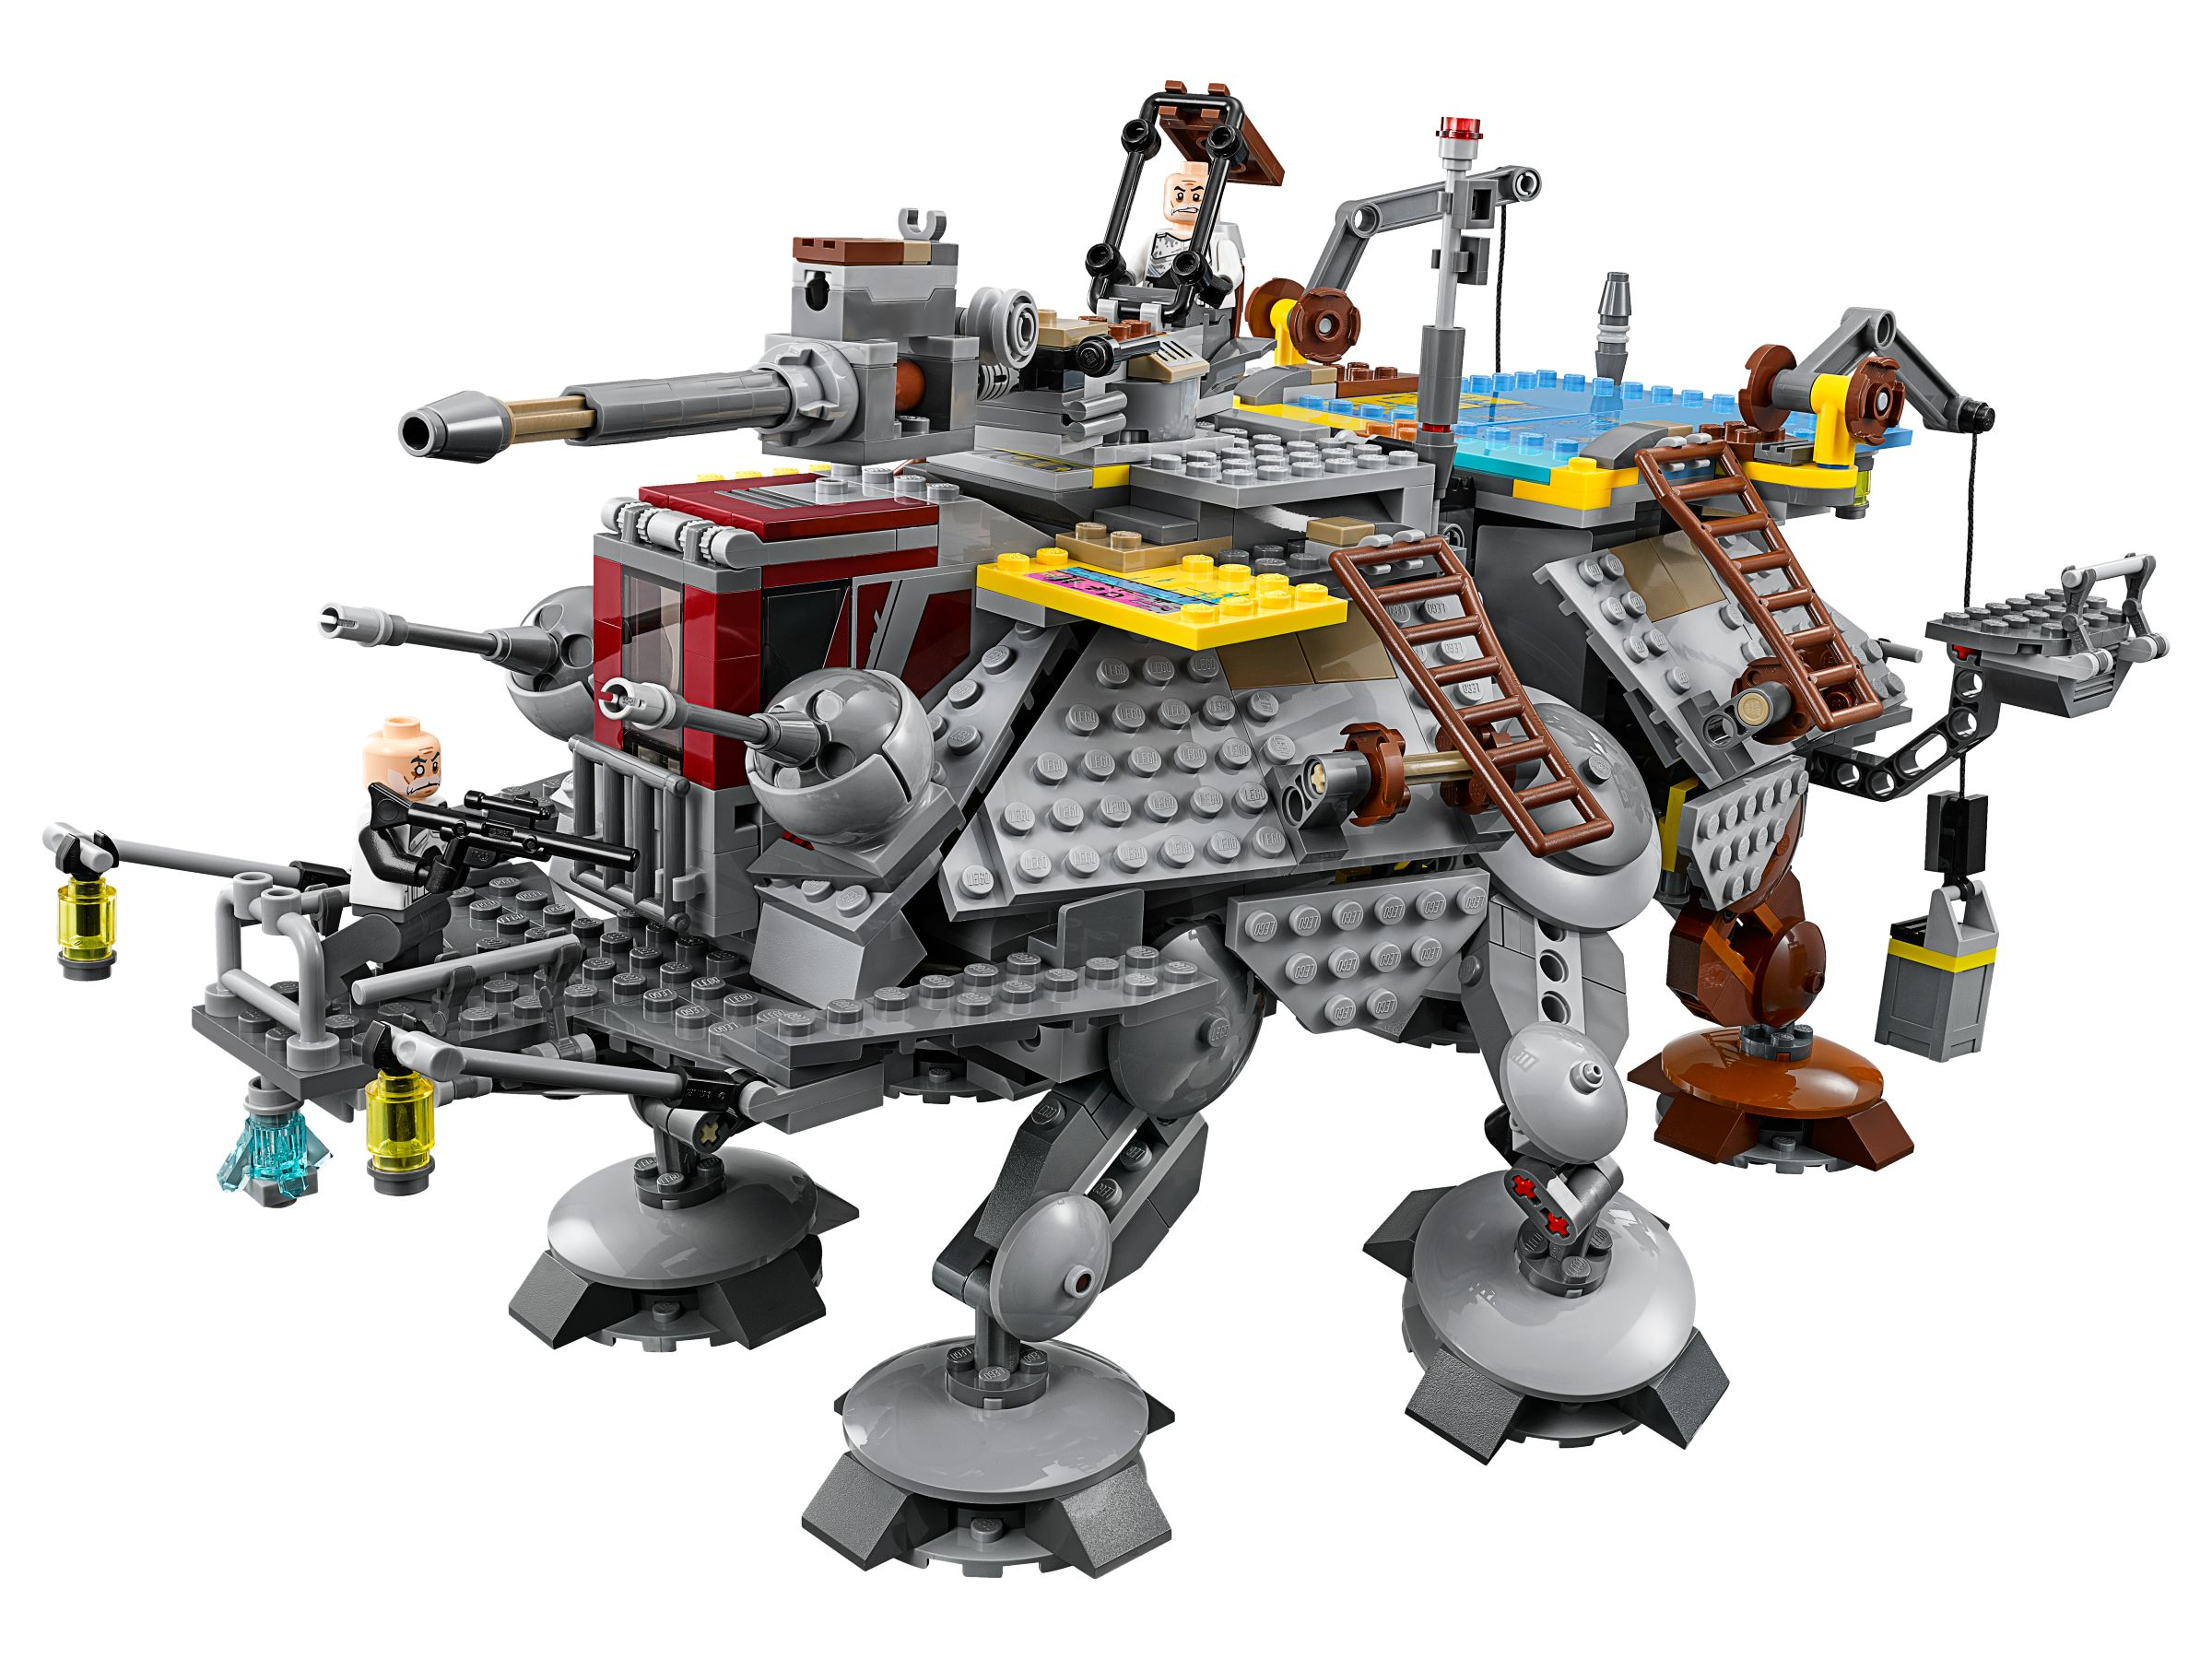 LEGO Star Wars 75157 Captain Rex's AT-TE™ LEGO_75157_alt2.jpg